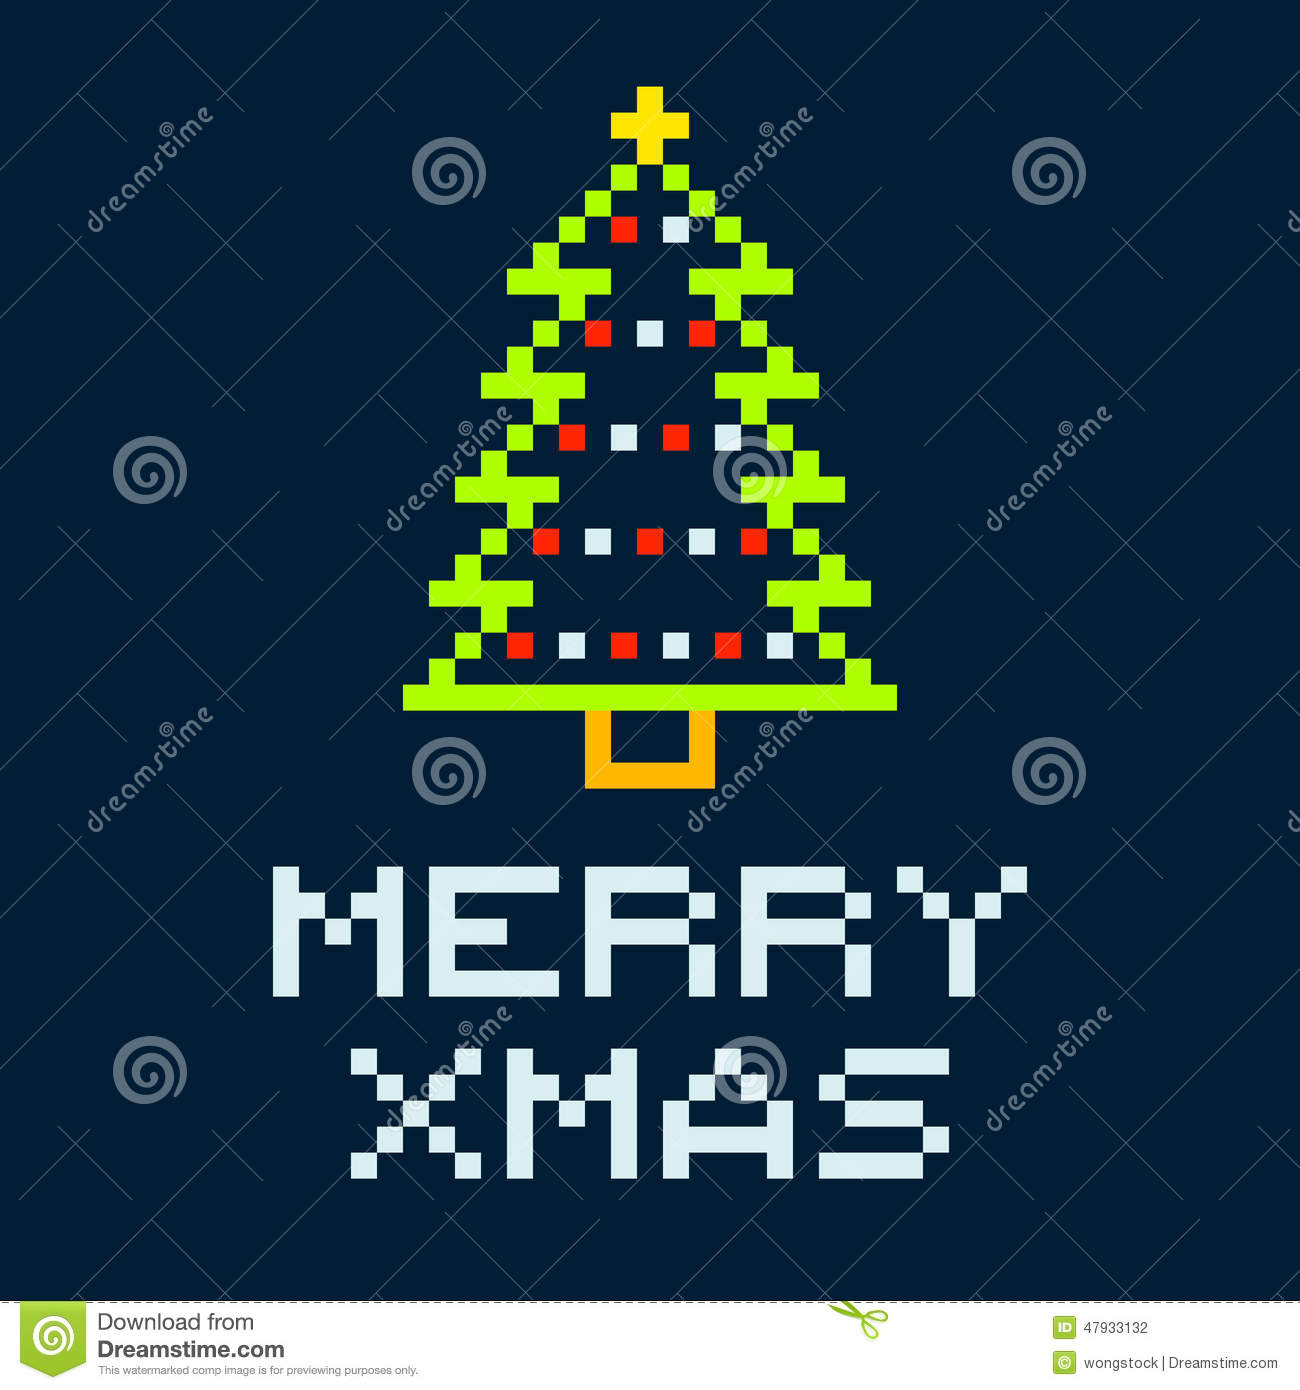 8-bit Pixel Merry Xmas Christmas Tree Stock Vector - Image: 47933132